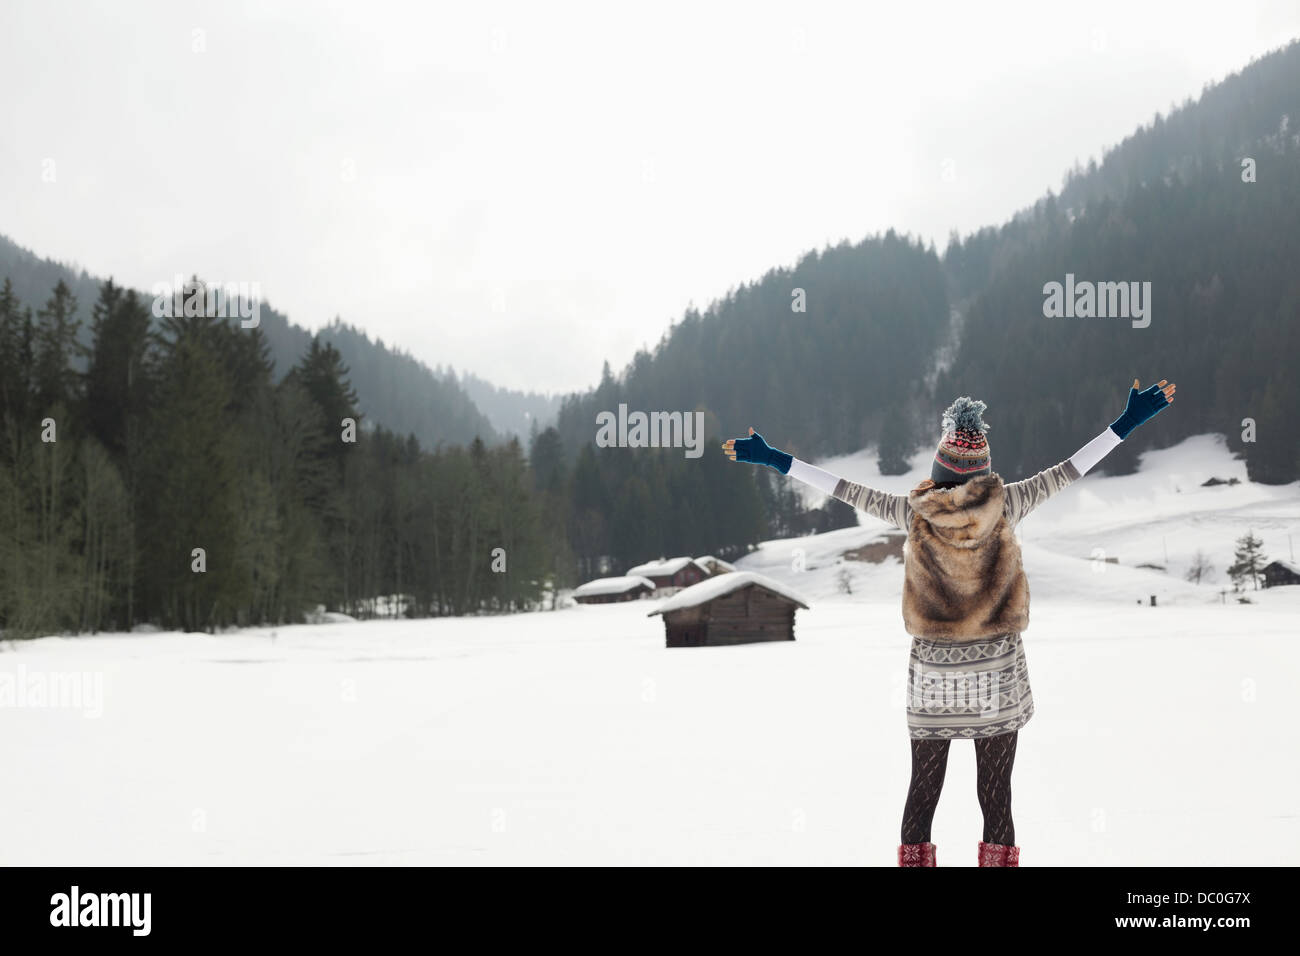 Carefree woman with arms outstretched in snowy field Stock Photo